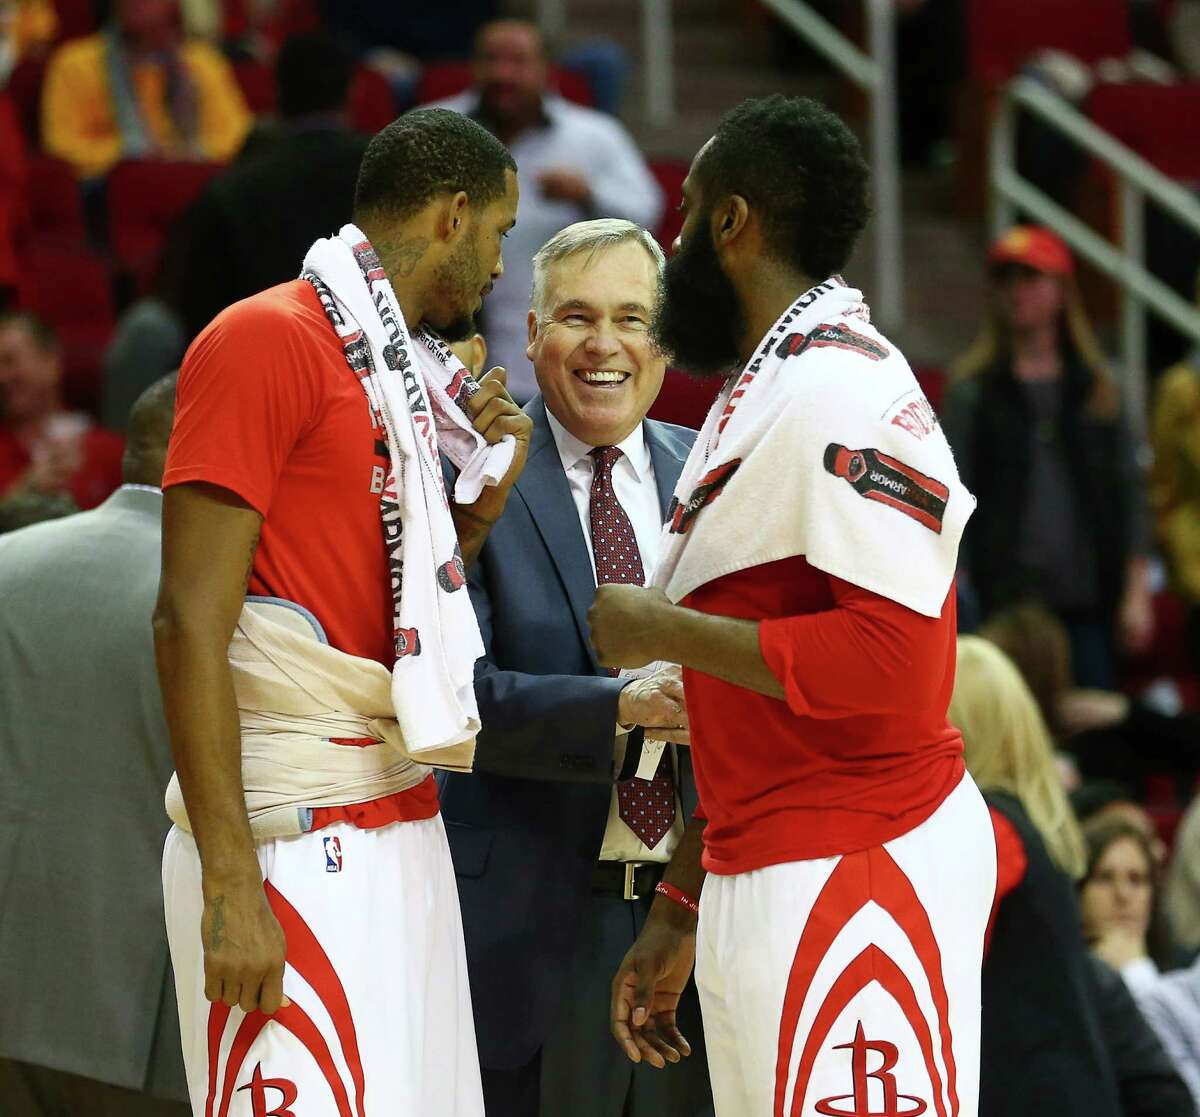 Rockets coach Mike D'Antoni, center, talks with Trevor Ariza, left, and James Harden. D'Antoni says the team is all-in every day, making coaching fun.